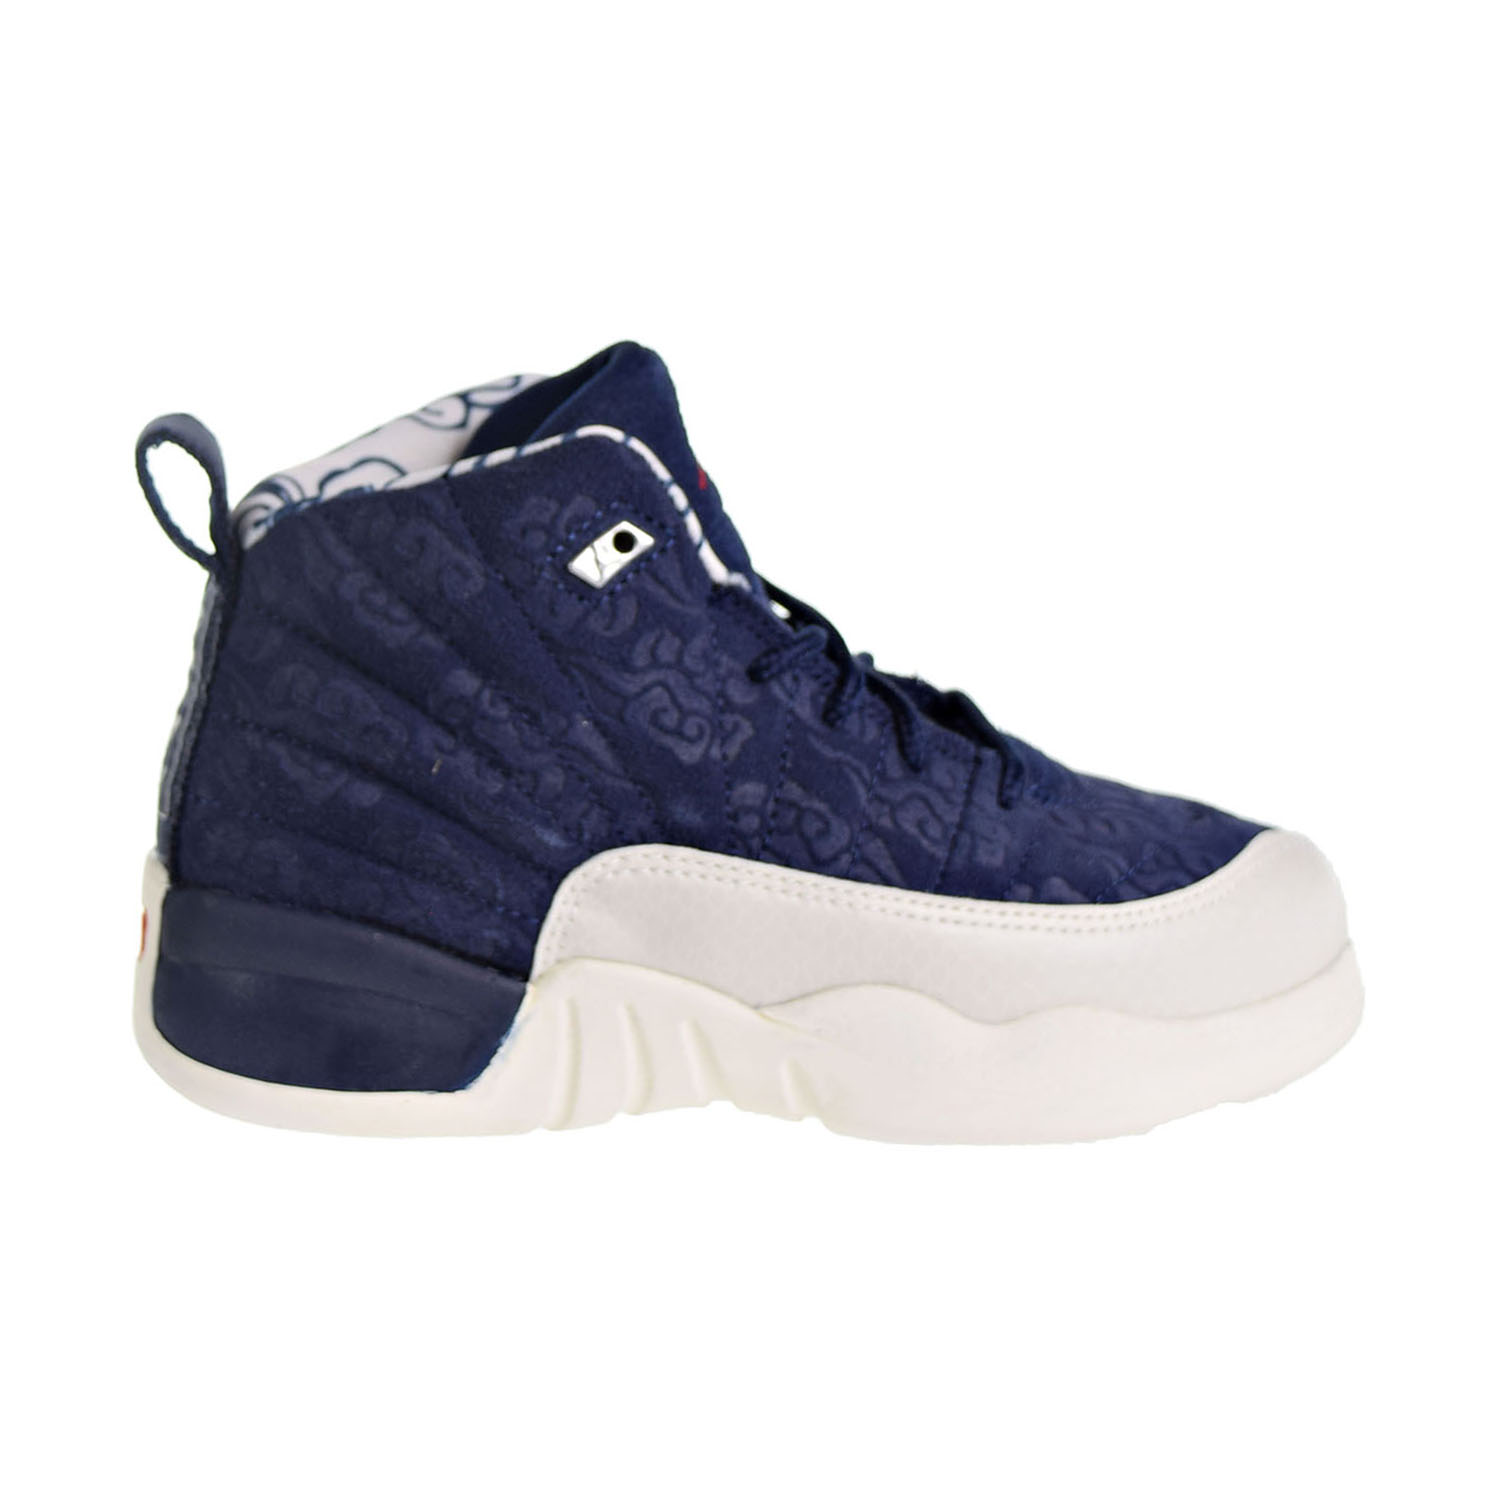 in stock edaa7 d59de Details about Jordan 12 Retro Premium Little Kid s Shoes Navy University  Red BV8018-445